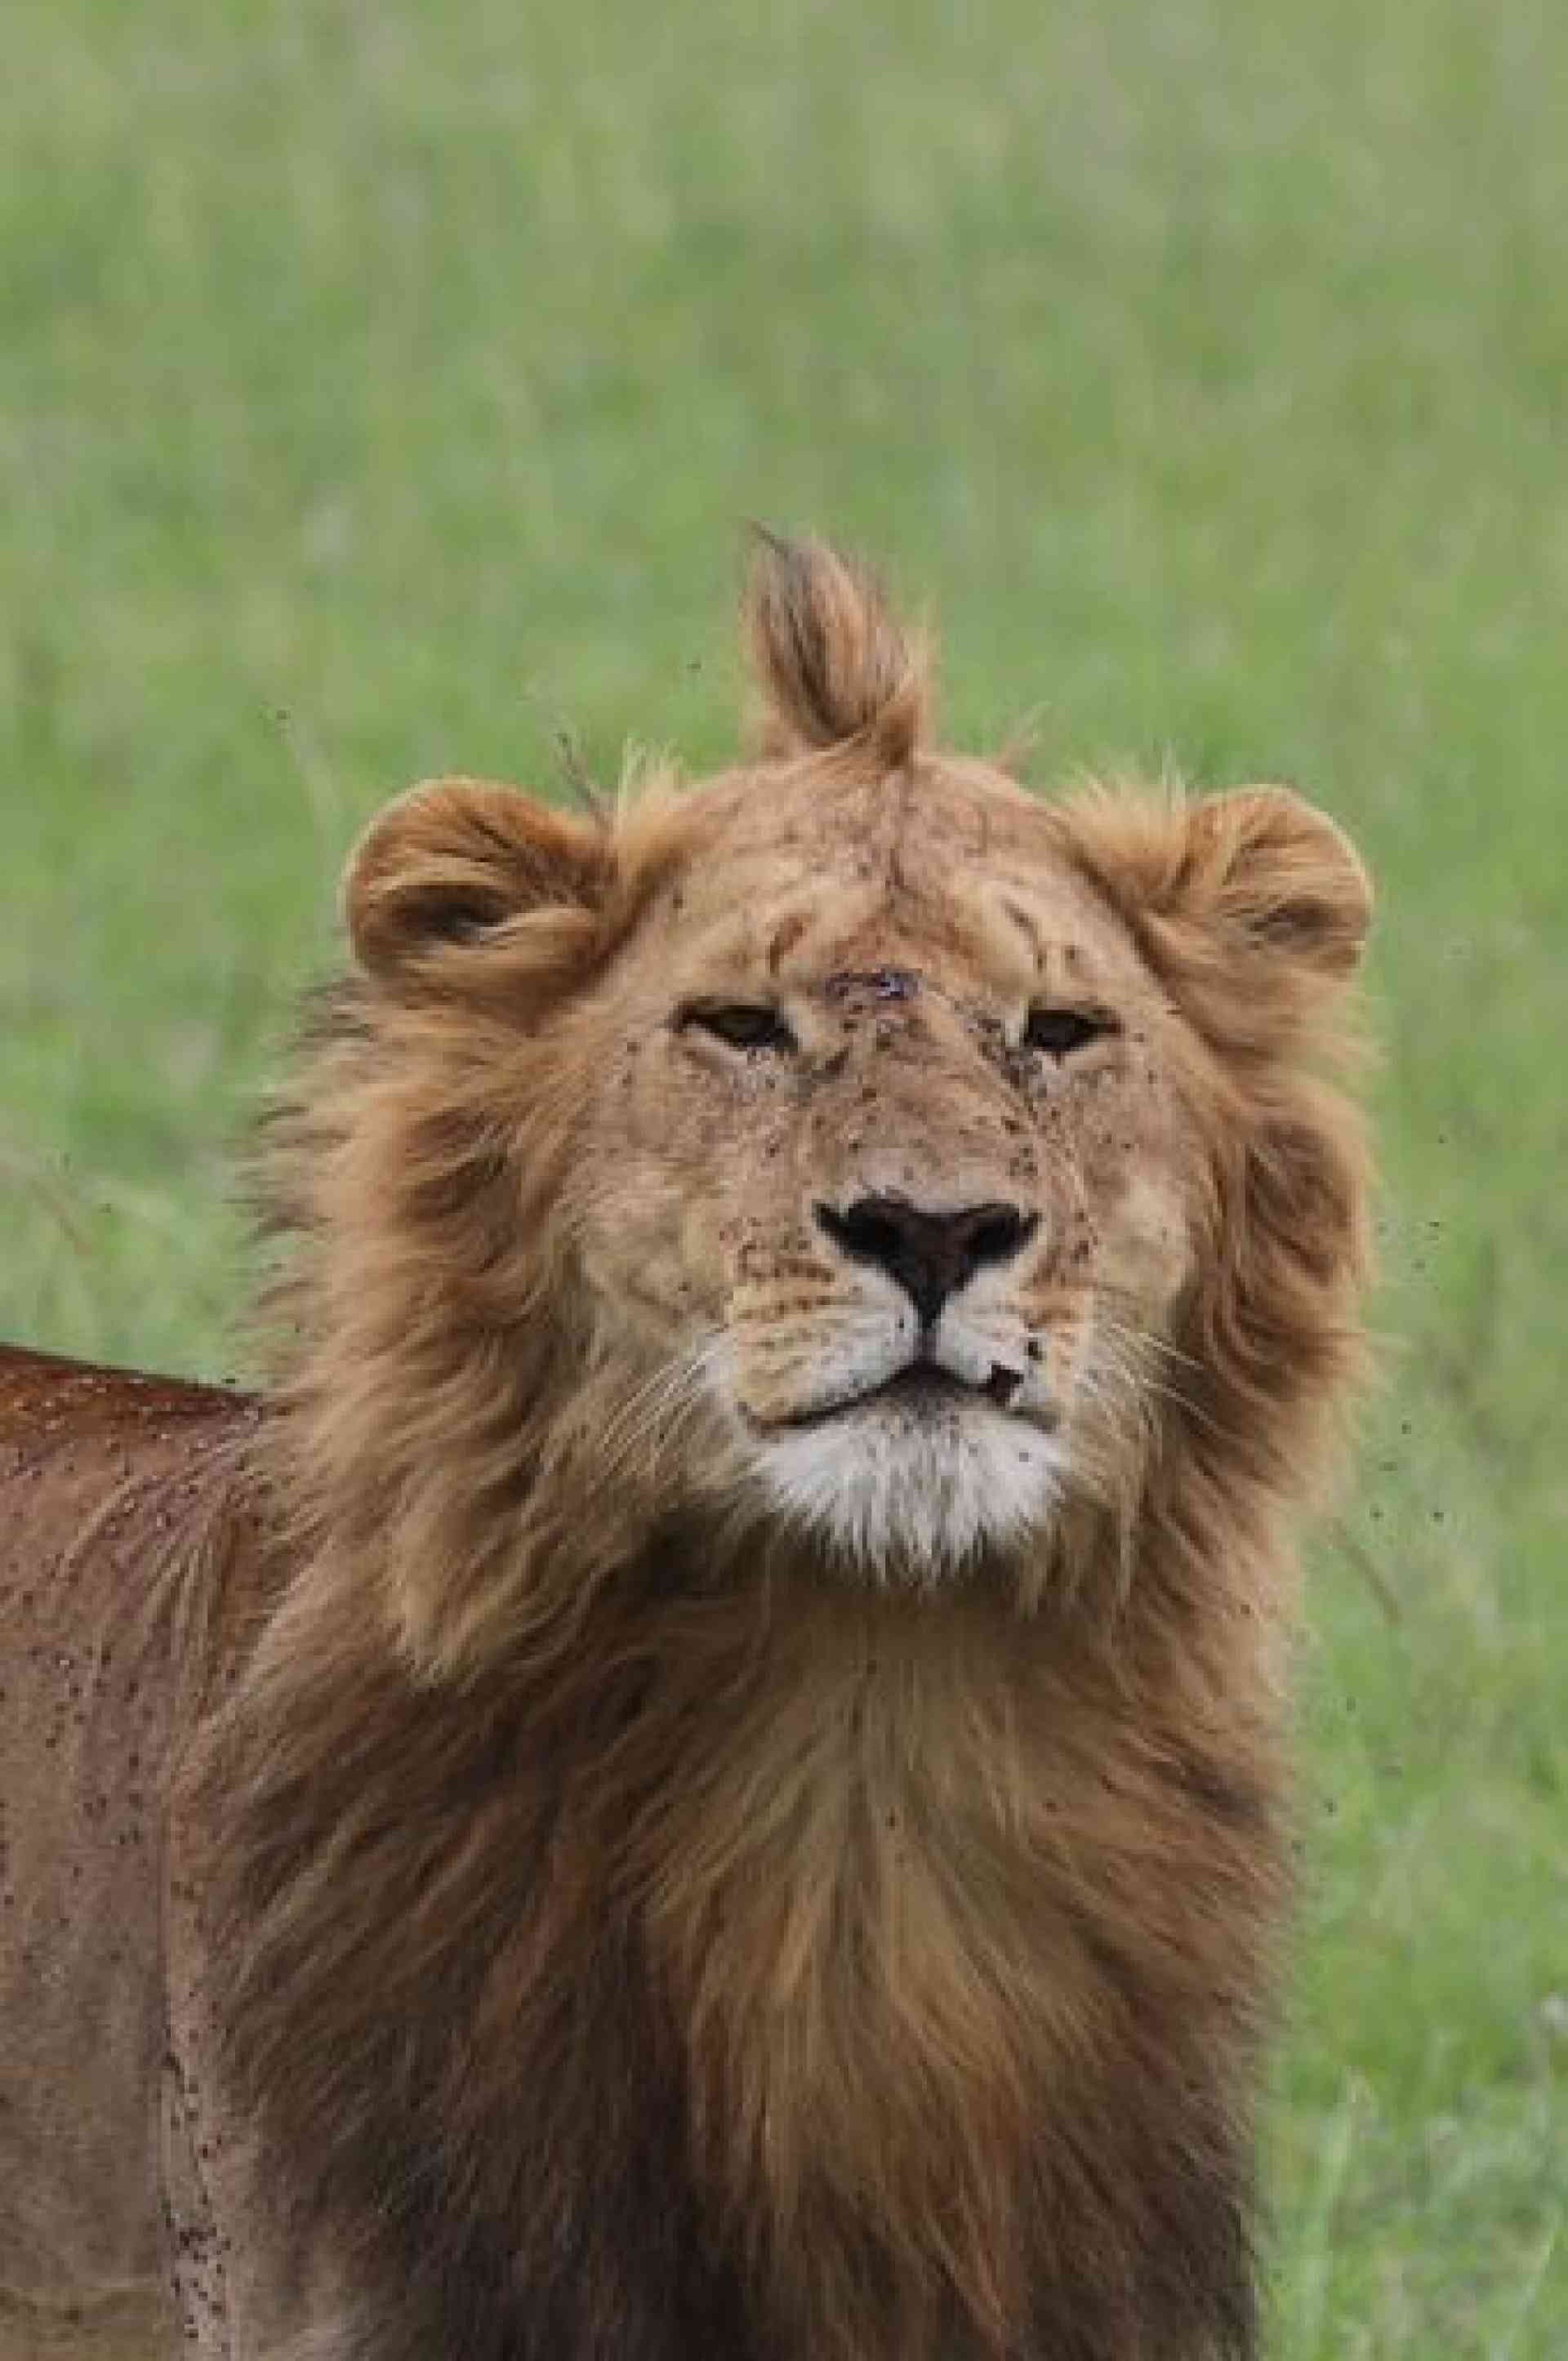 Congratulations to our August 2019 winner Christine for this great shot of the 'king of the jungle' on our South Africa, Botswana & Kenya small group tour.